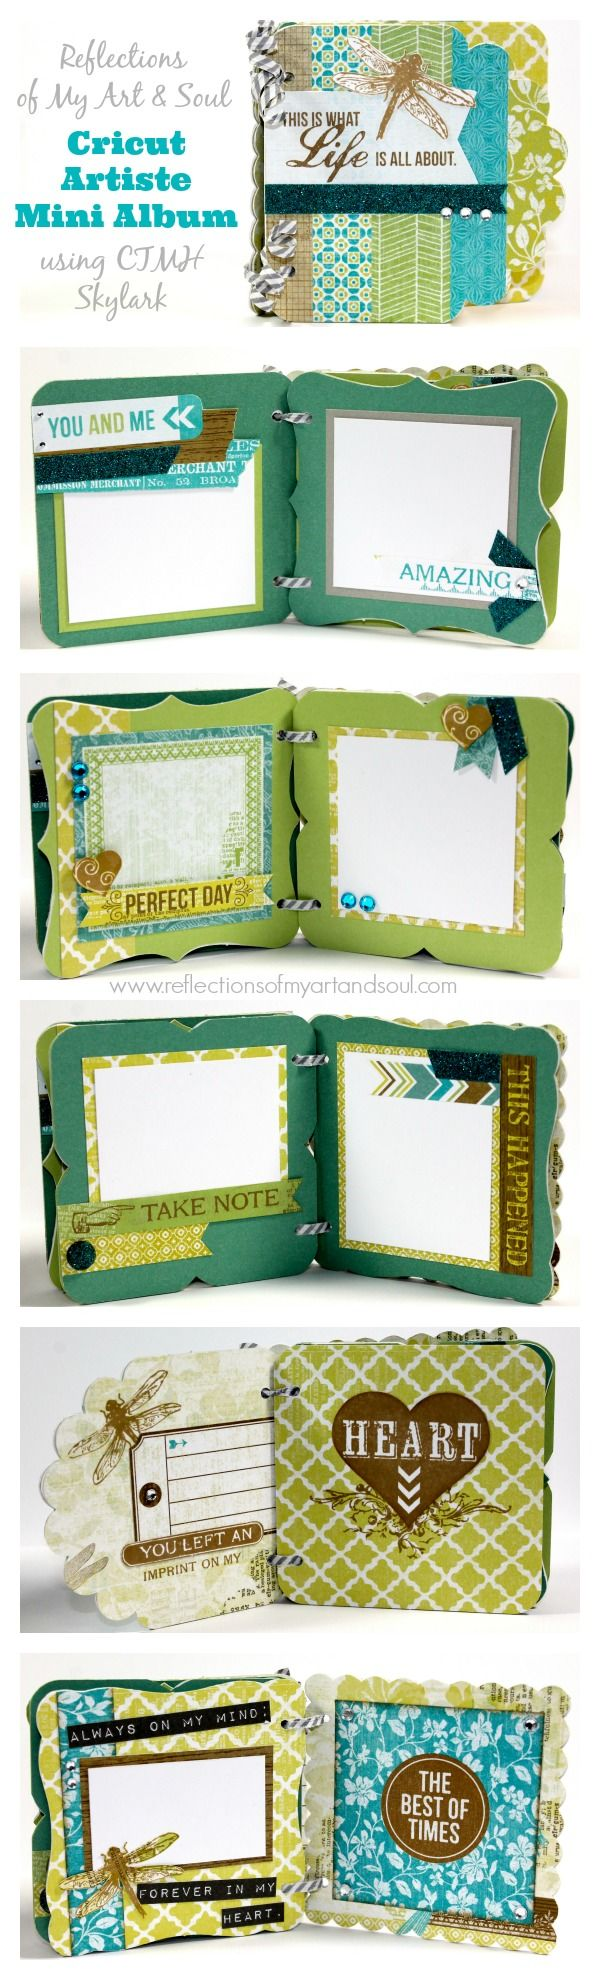 My special gift to you when you place a qualifying order TODAY 7/12! #Cricut Artiste Mini Album using #CTMH Skylark by Pamela O'Connor at www.reflectionsofmyartandsoul.com